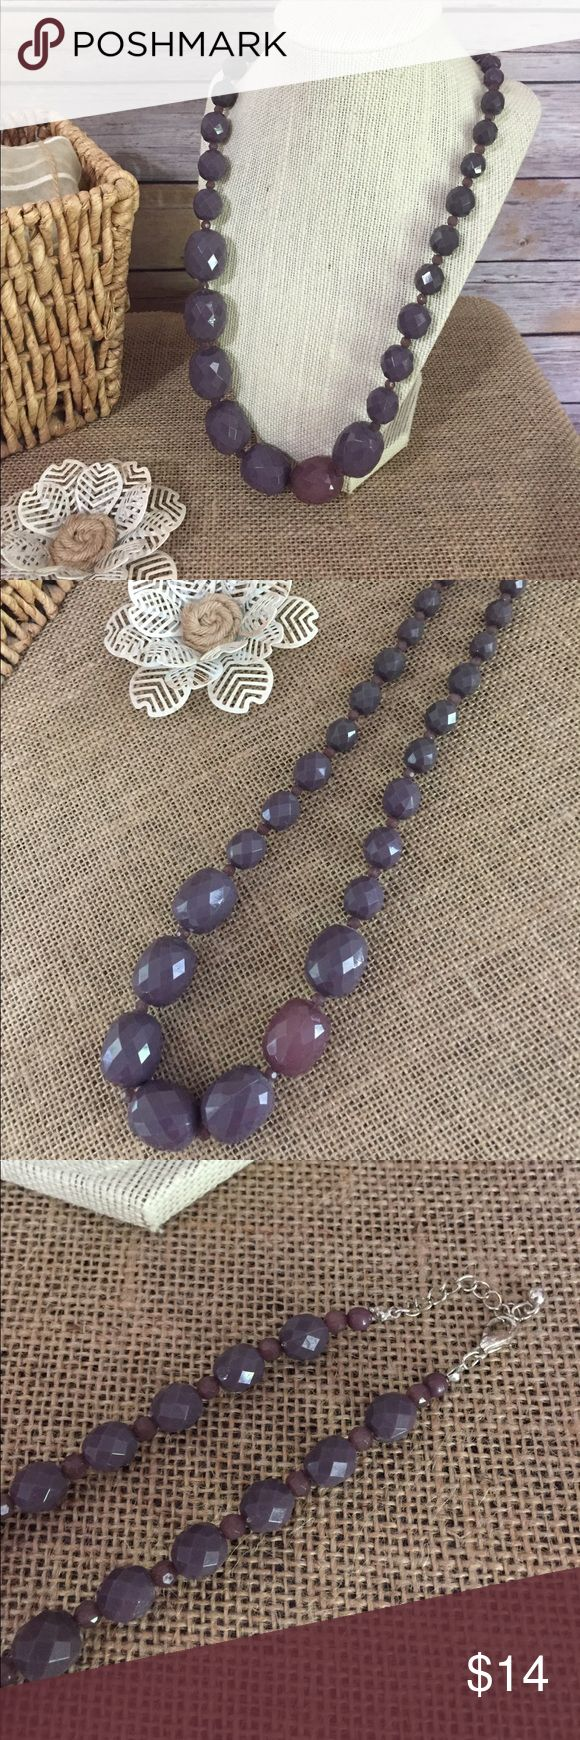 Purple Resin Bead Necklace This is pre-loved it but in perfect condition, from my collection. Purple plastic resin beads in graduated sizes and they are faceted. Measures approximately 28 inches. N137. Bundles and offers always welcome. Jewelry Necklaces